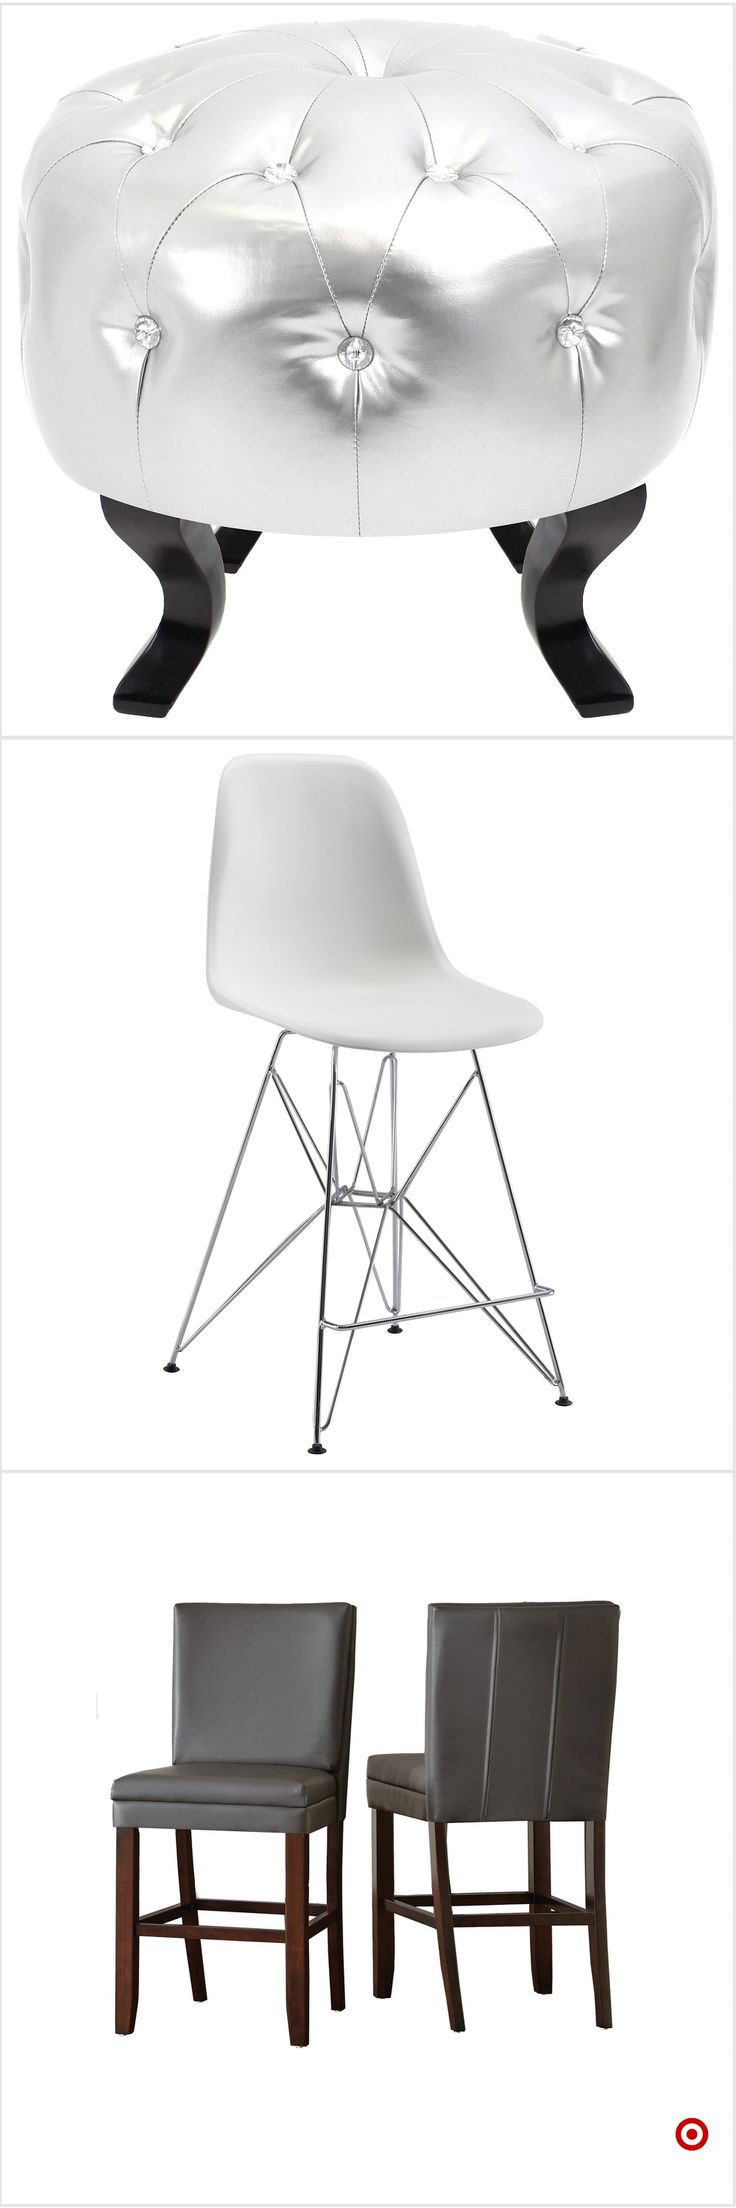 Shop Target for kids stools and hardback chairs you will love at great low prices. Free shipping on all orders or free same-day pick-up in store.